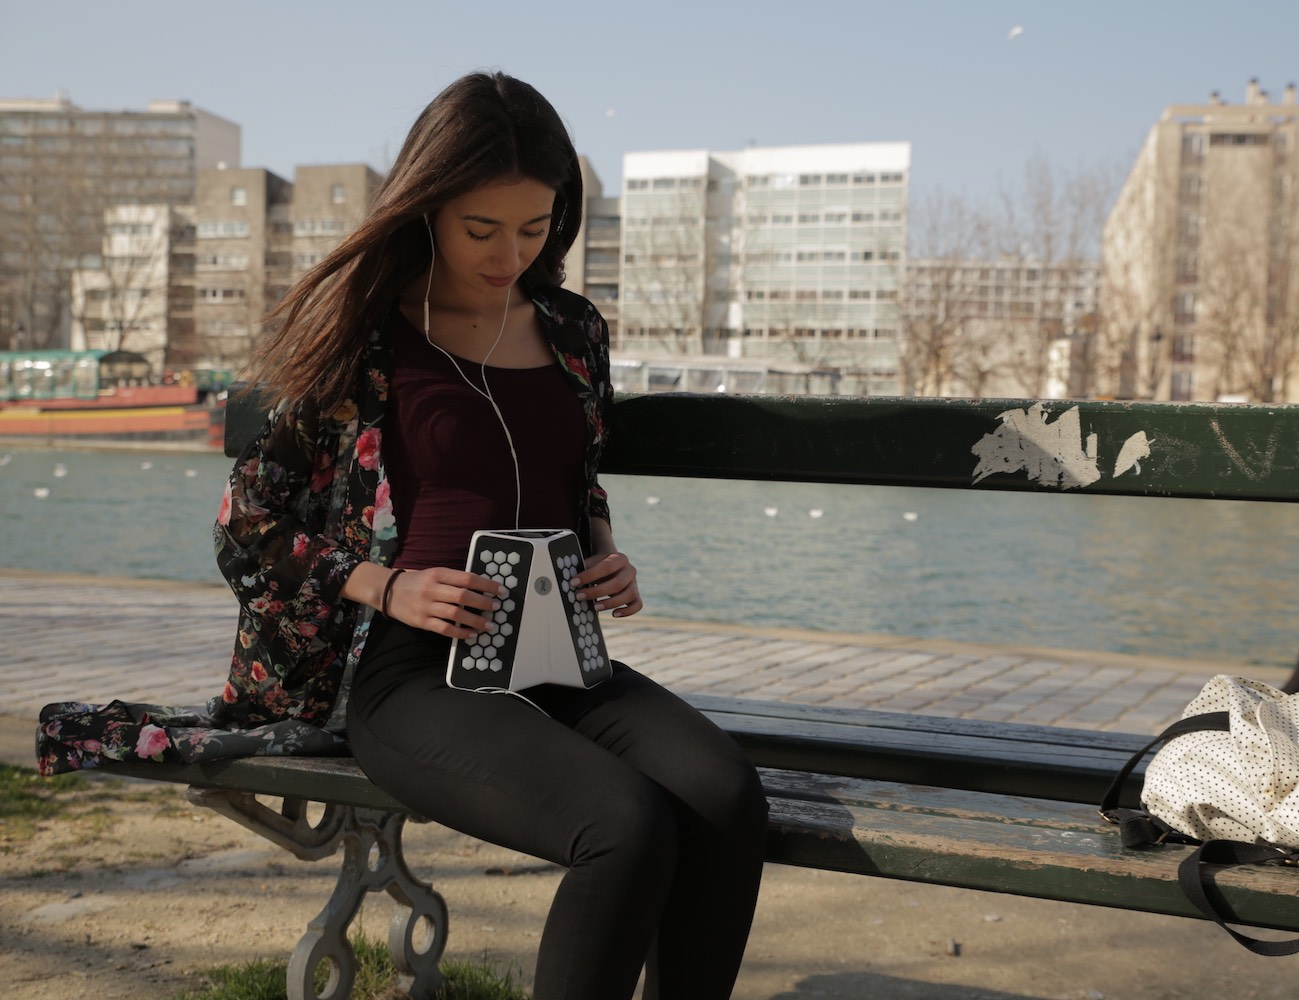 Dualo – The new musical instrument for all